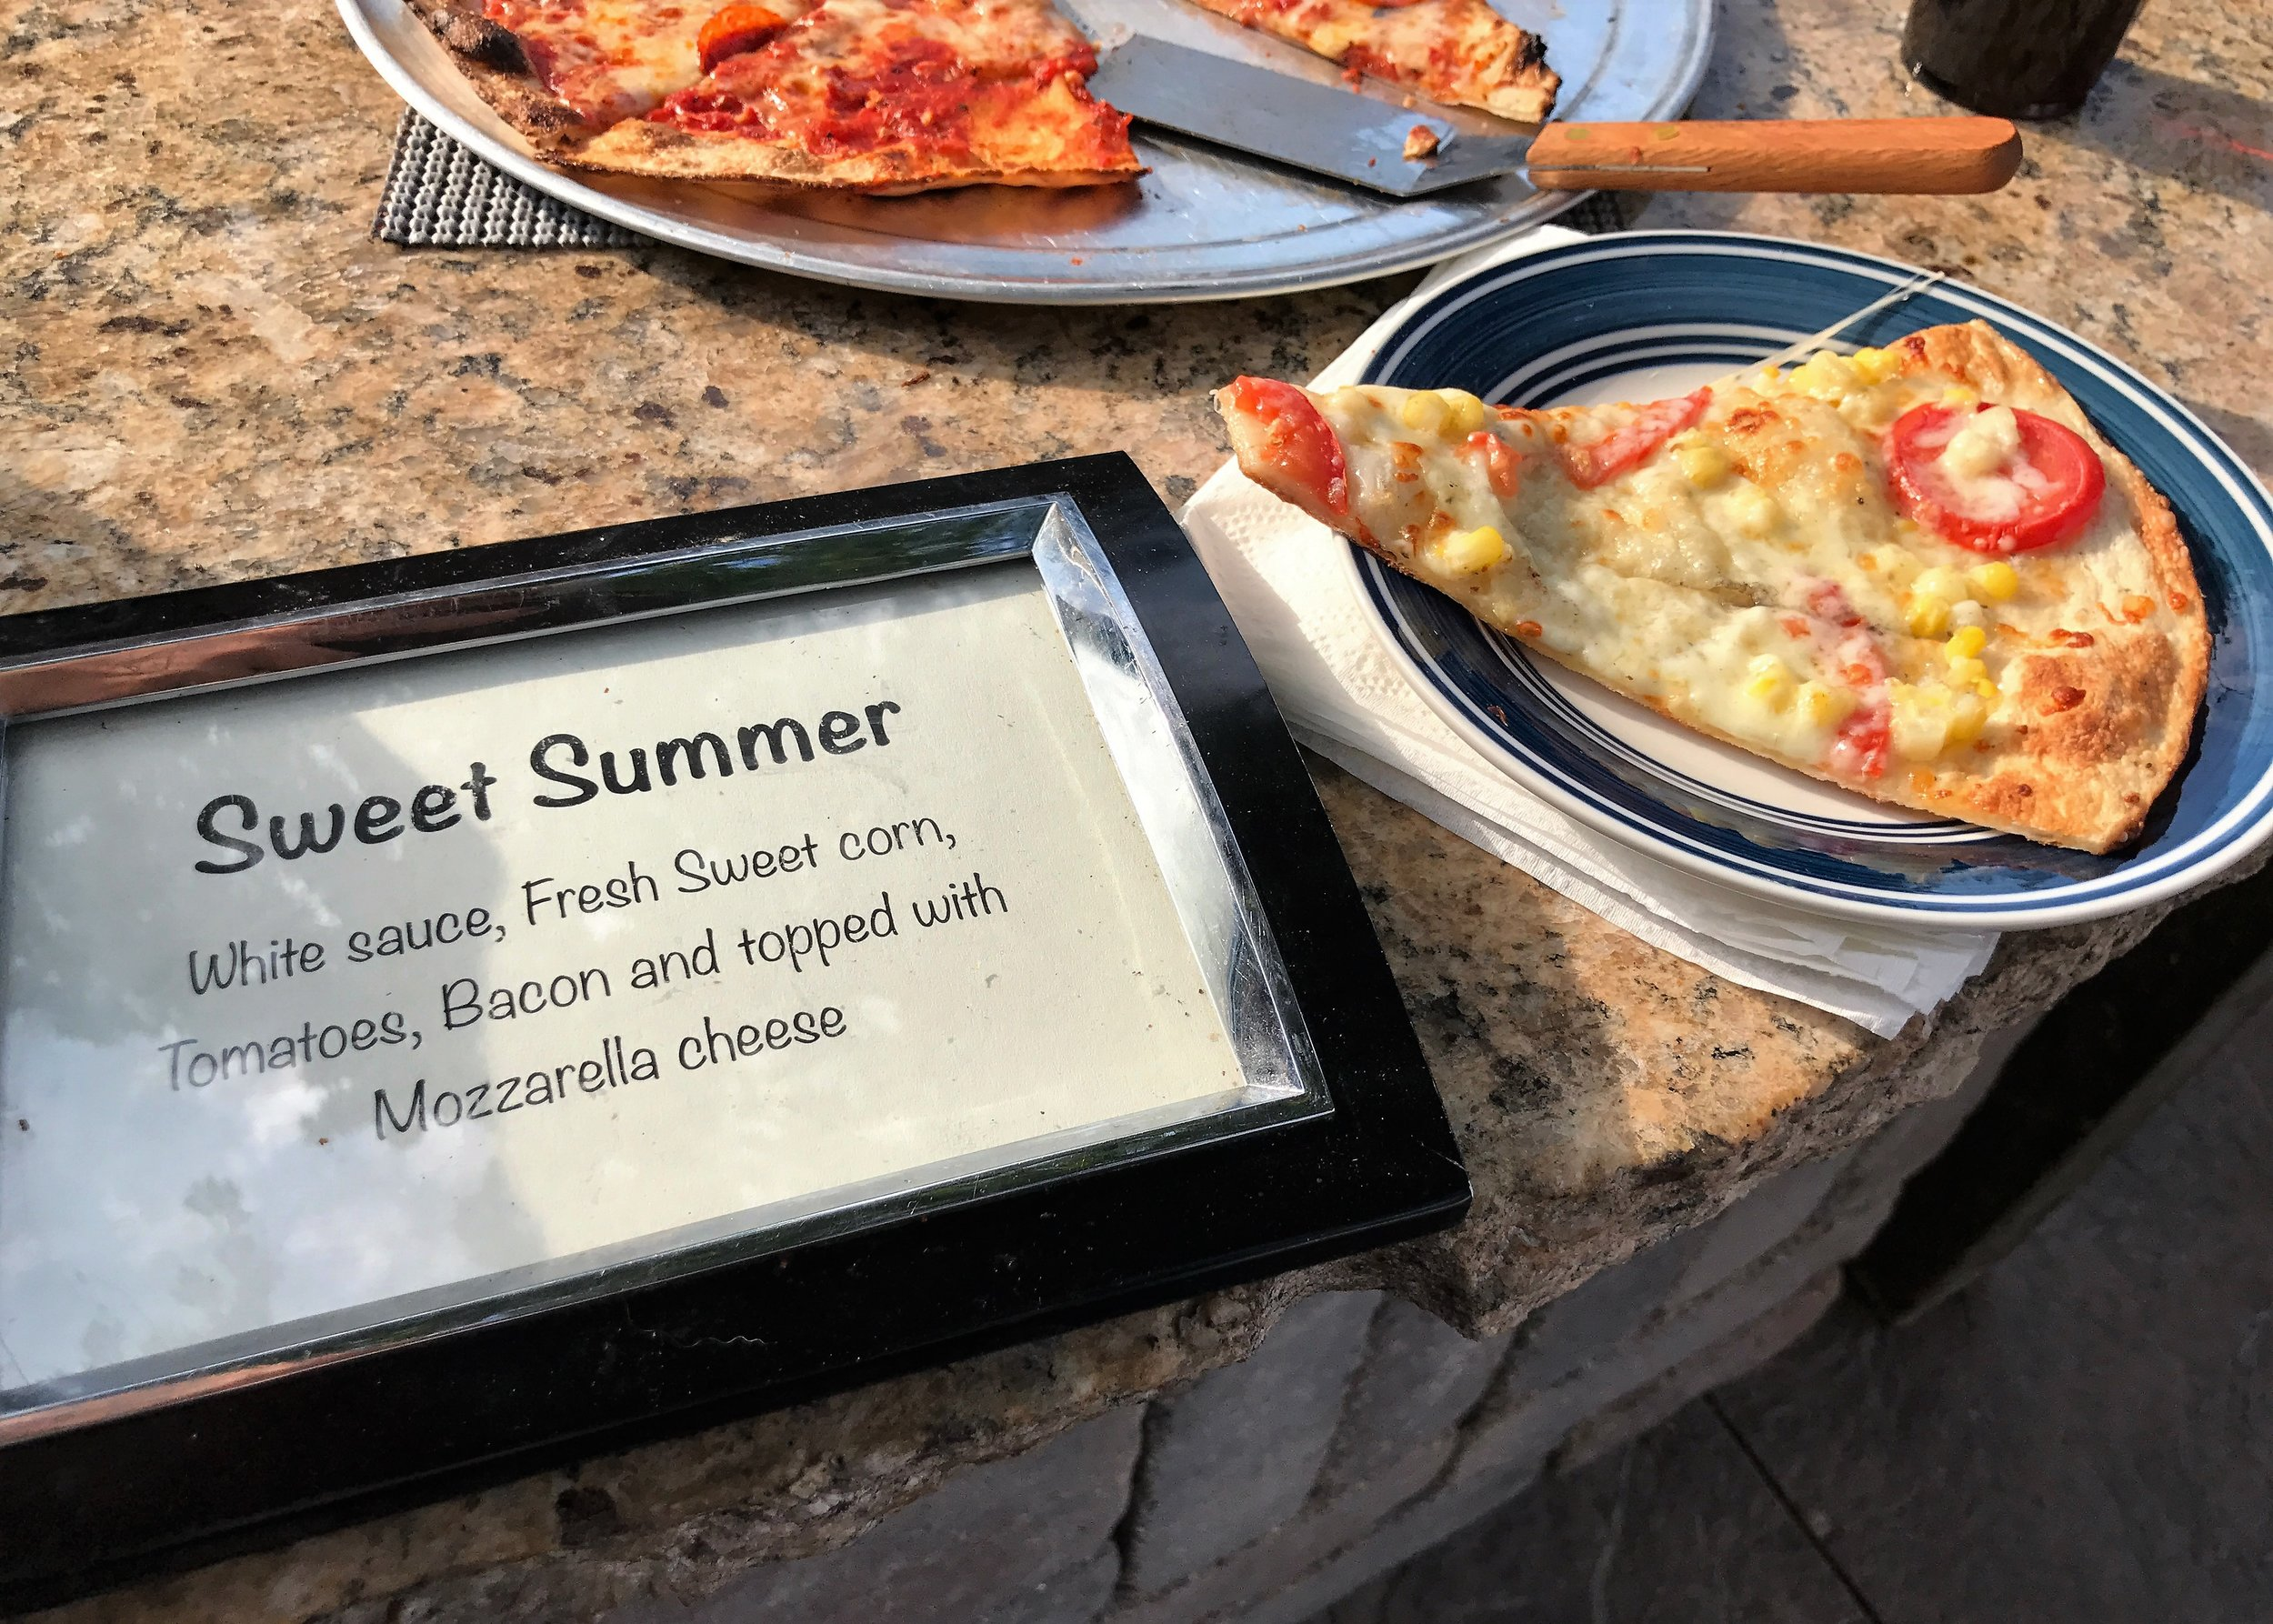 One pizza, in particular, piqued Anita's curiosity: Sweet Summer. Fresh tomatoes, crispy bacon, and tender sweet corn on a wood-fired crust. Photo credit: Anita McVey